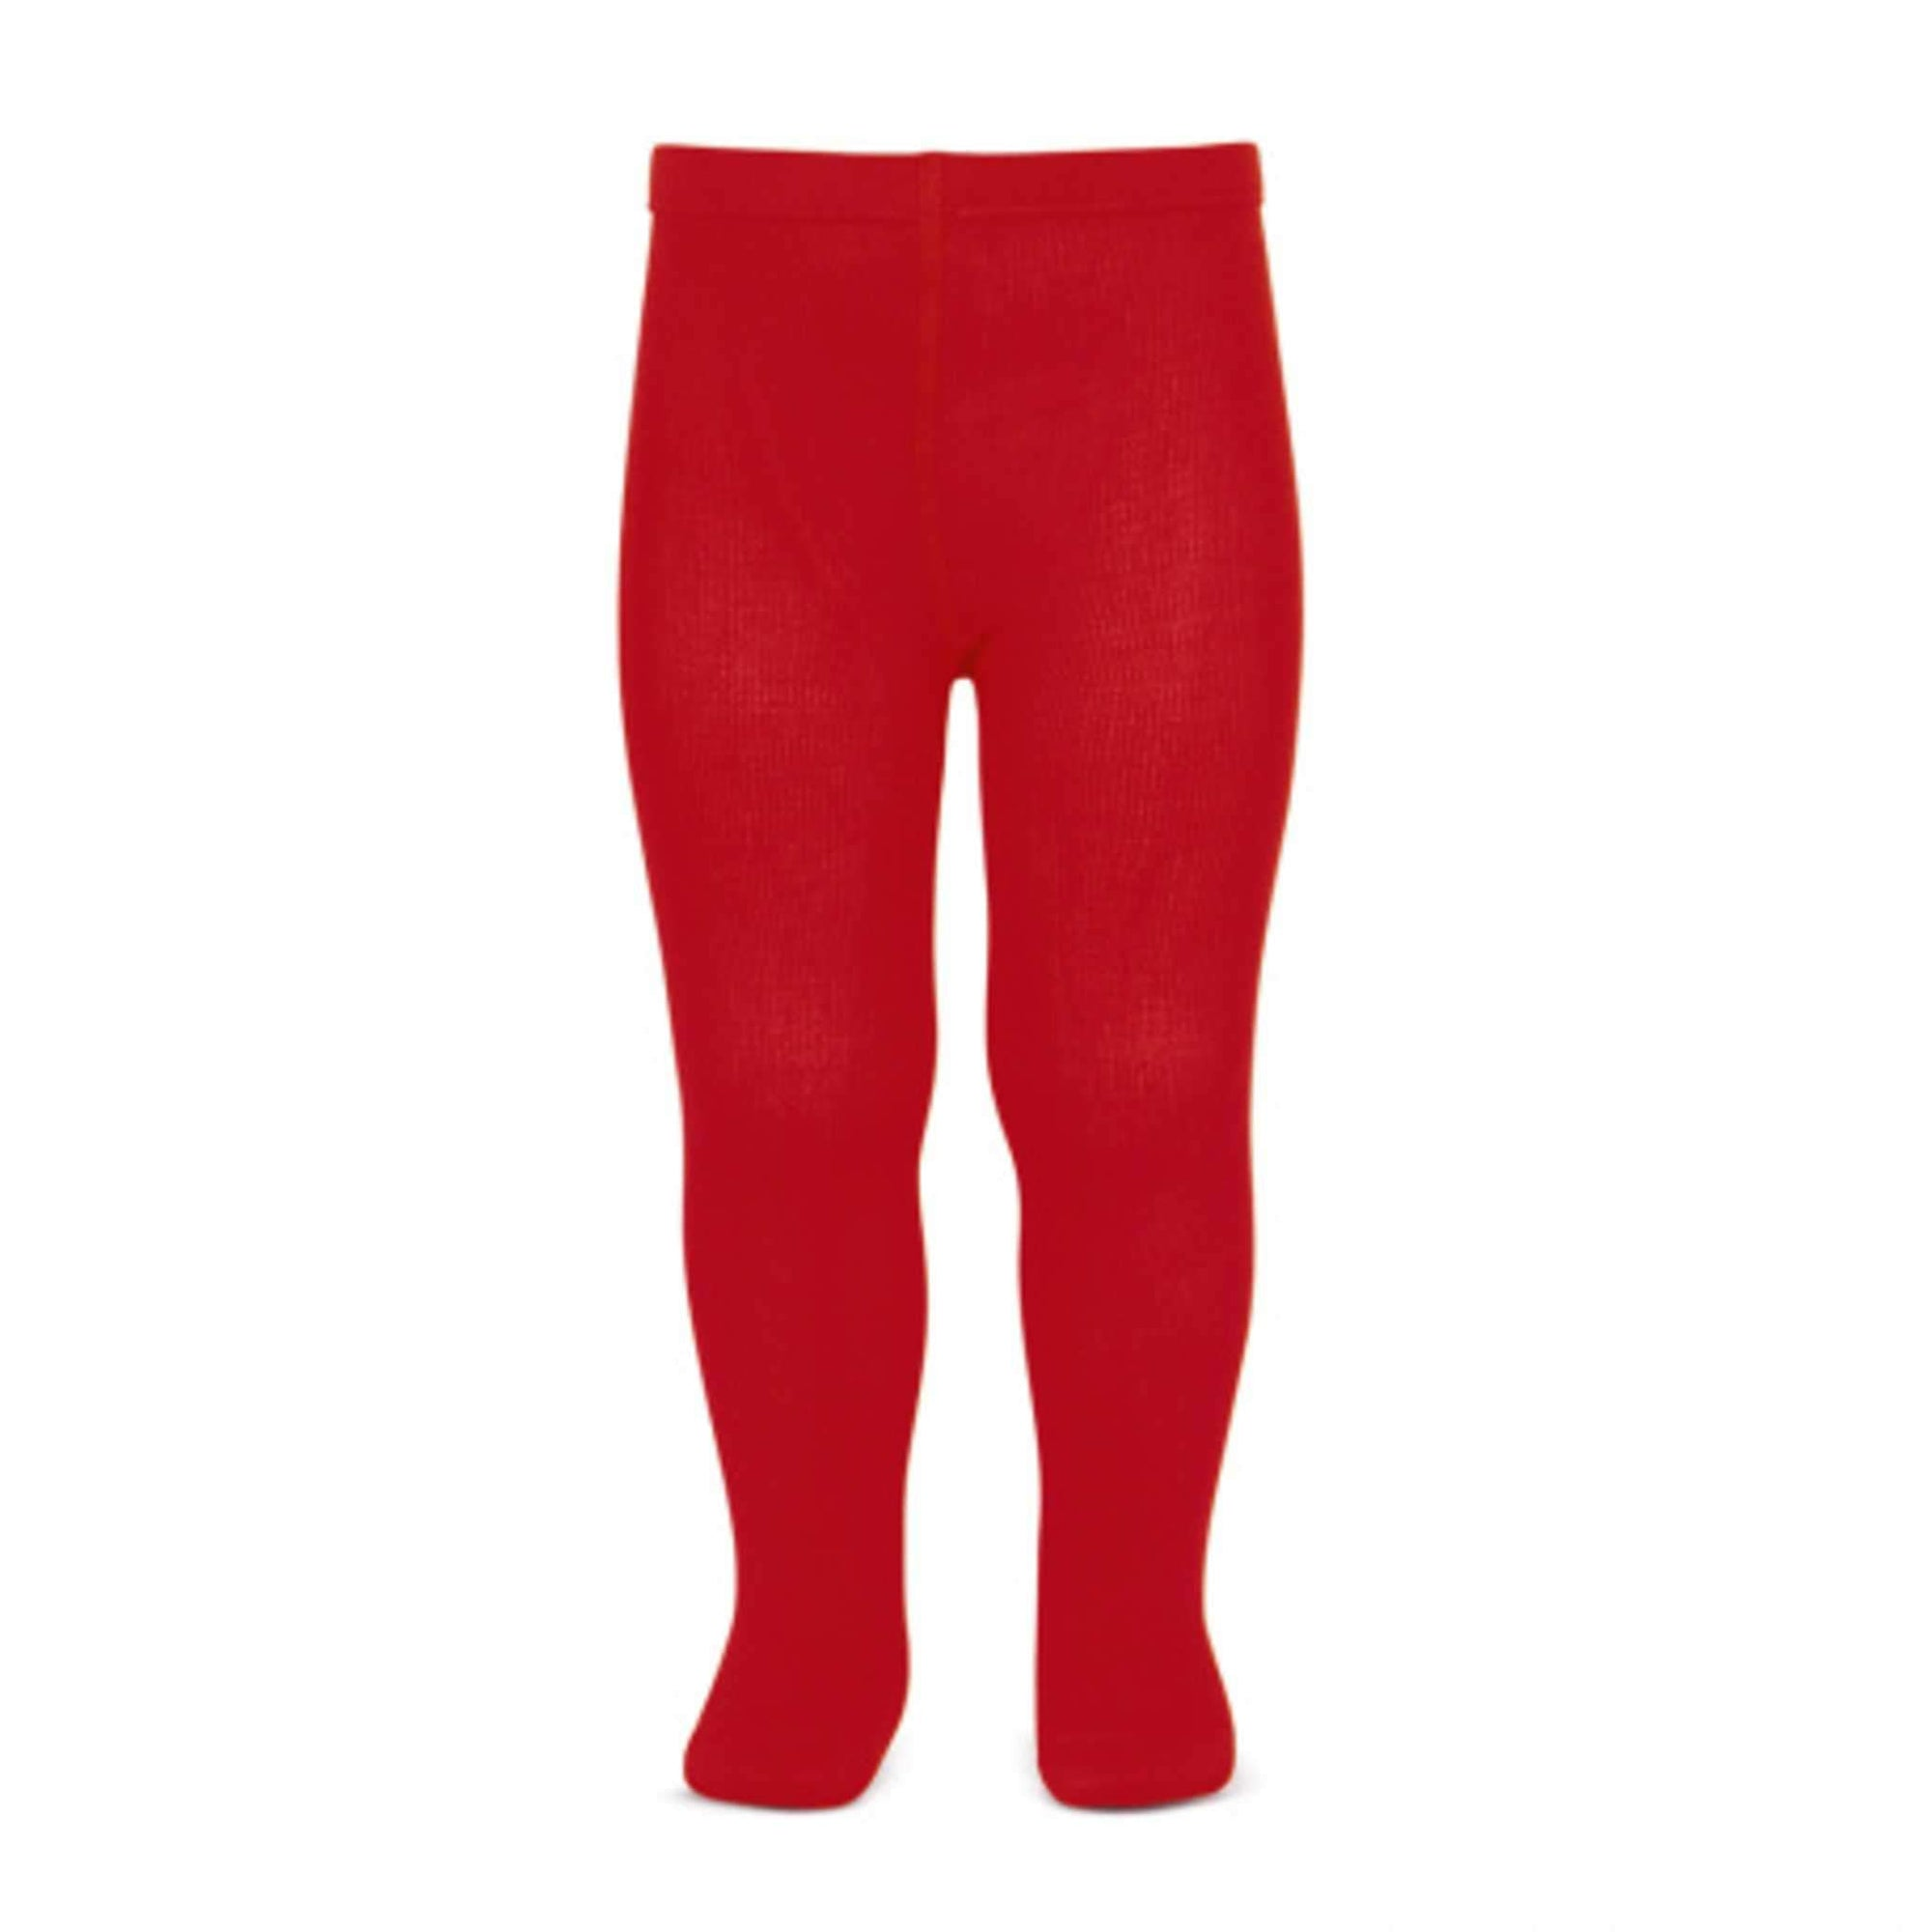 Basic Plain Tights Red-Accessories-Condor Barcelona-000-Little Soldiers